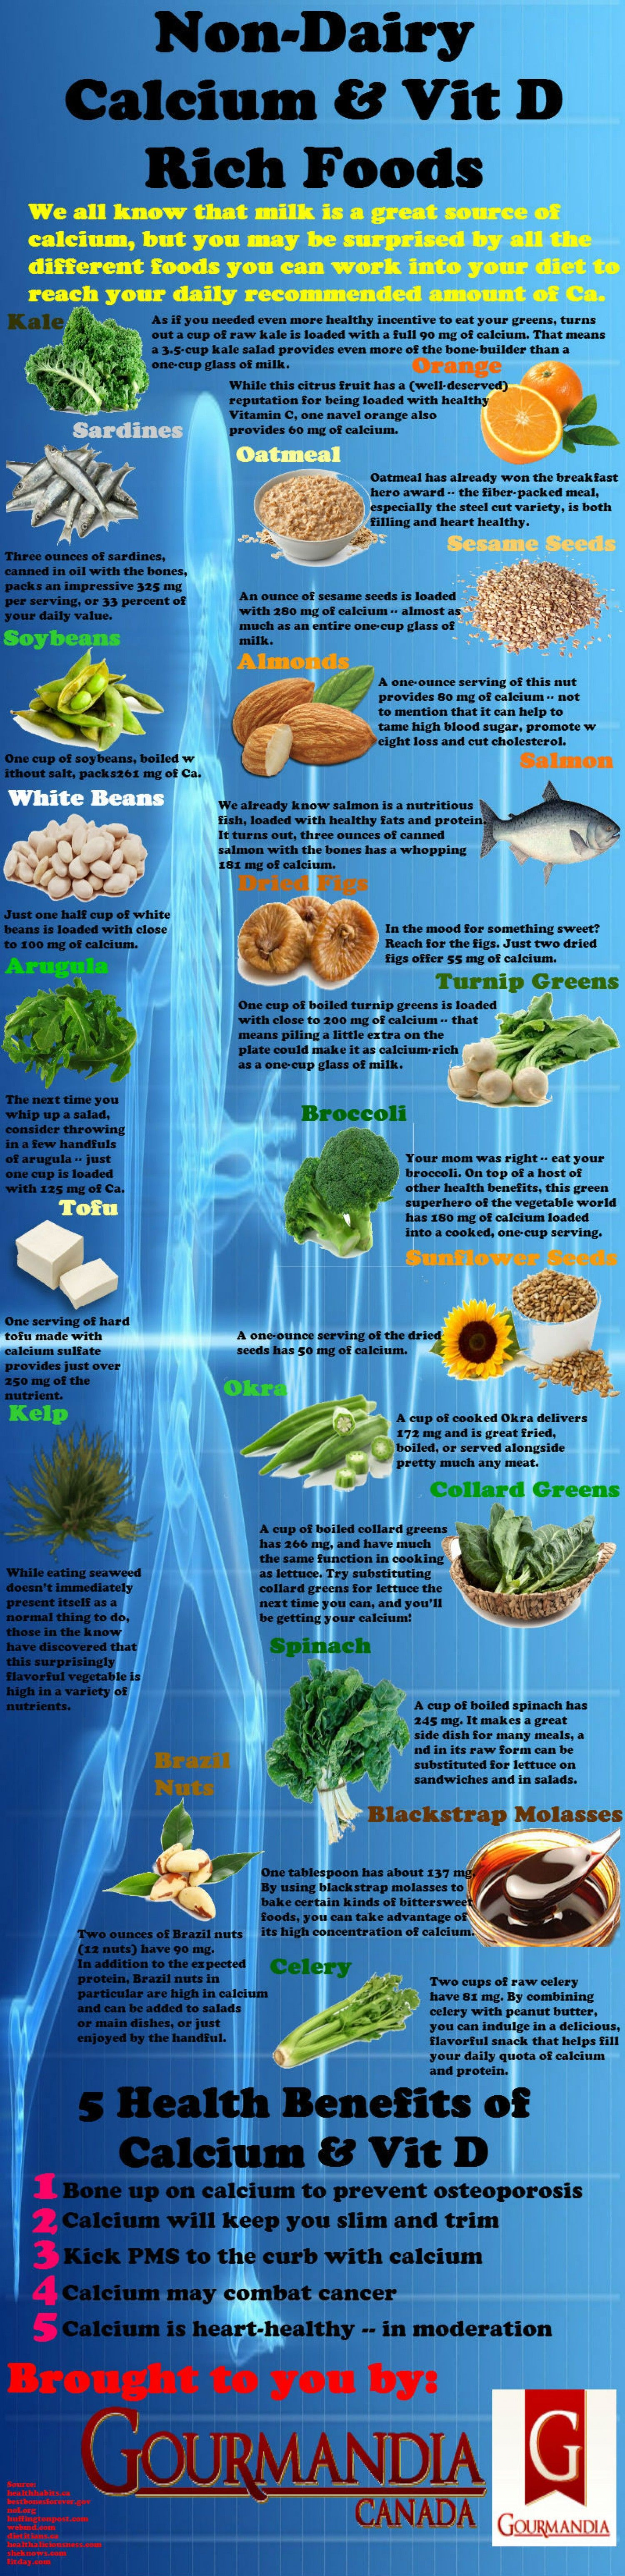 Non Dairy Calcium Vit D Rich Foods Http Visual Ly Non Dairy Calcium Vit D Rich Foods Health Healing Food Nutrition